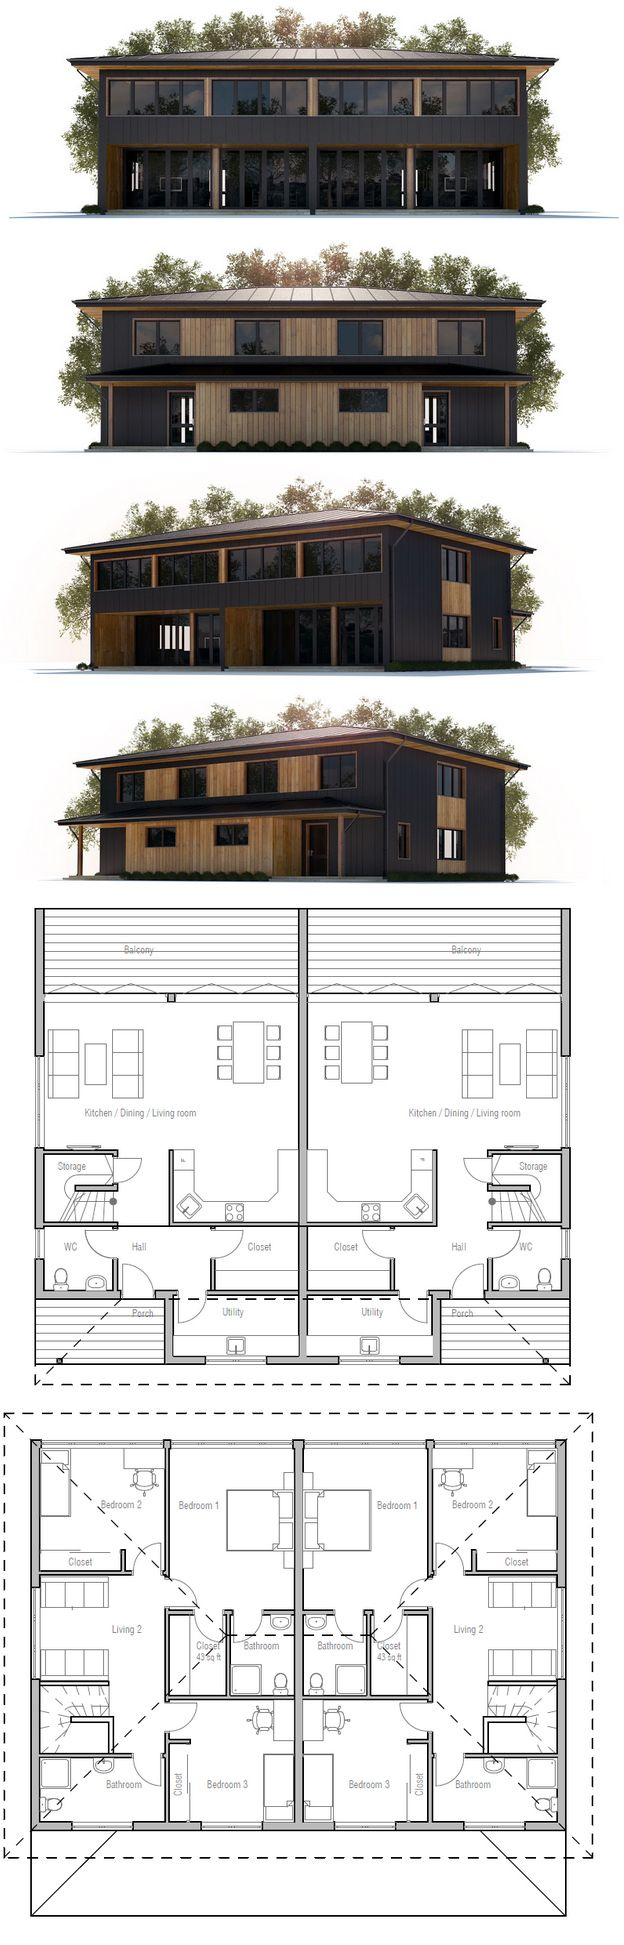 Best 20 duplex house ideas on pinterest for Plan de maison en duplex